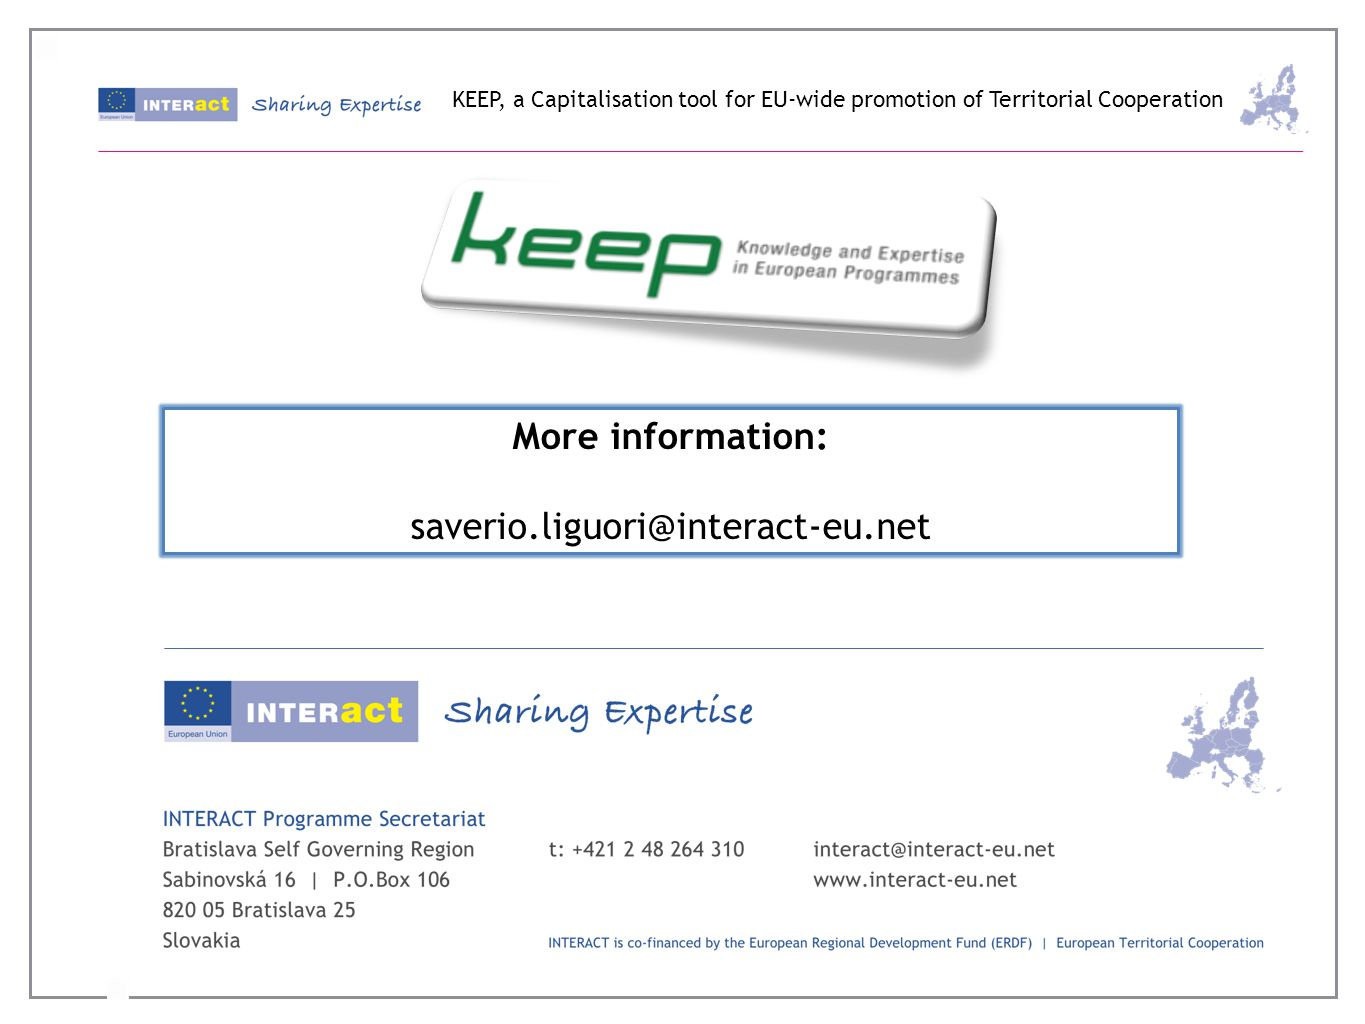 More information: KEEP, a Capitalisation tool for EU-wide promotion of Territorial Cooperation